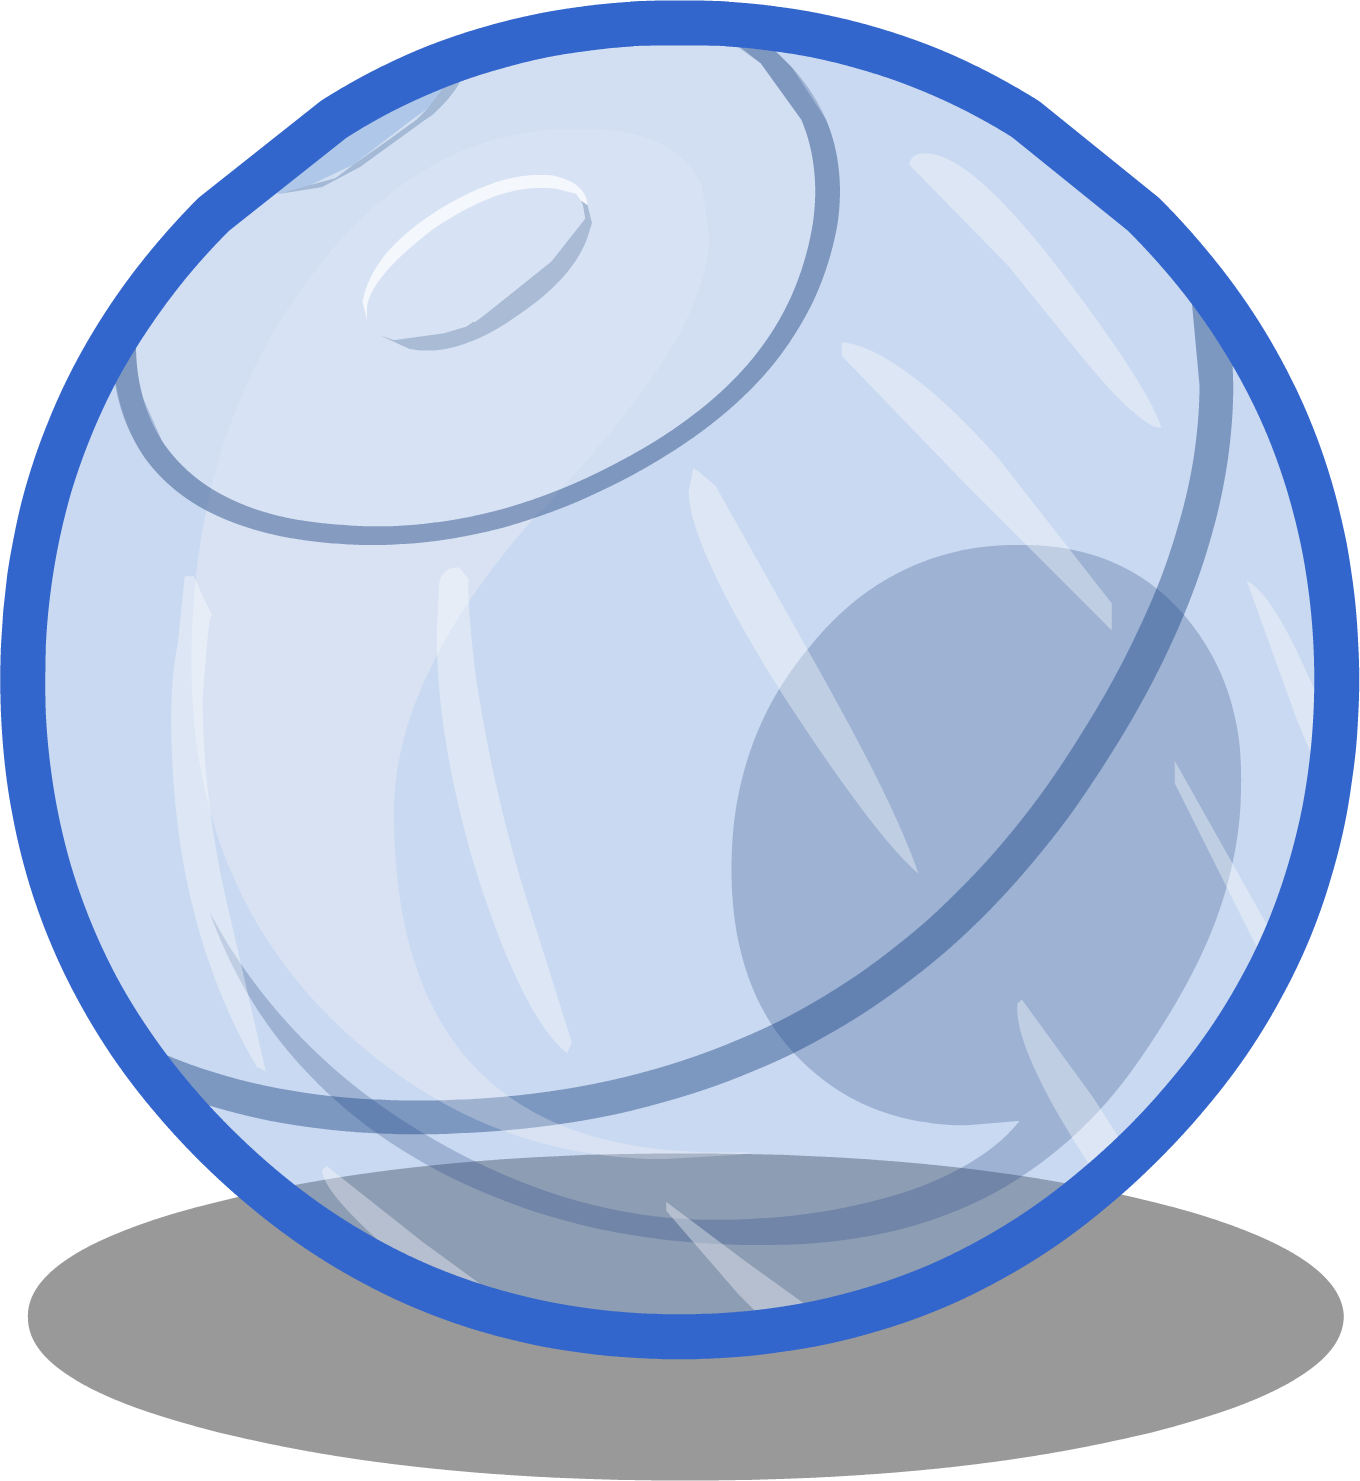 Puffle club penguin wiki. Marbles clipart 9 ball